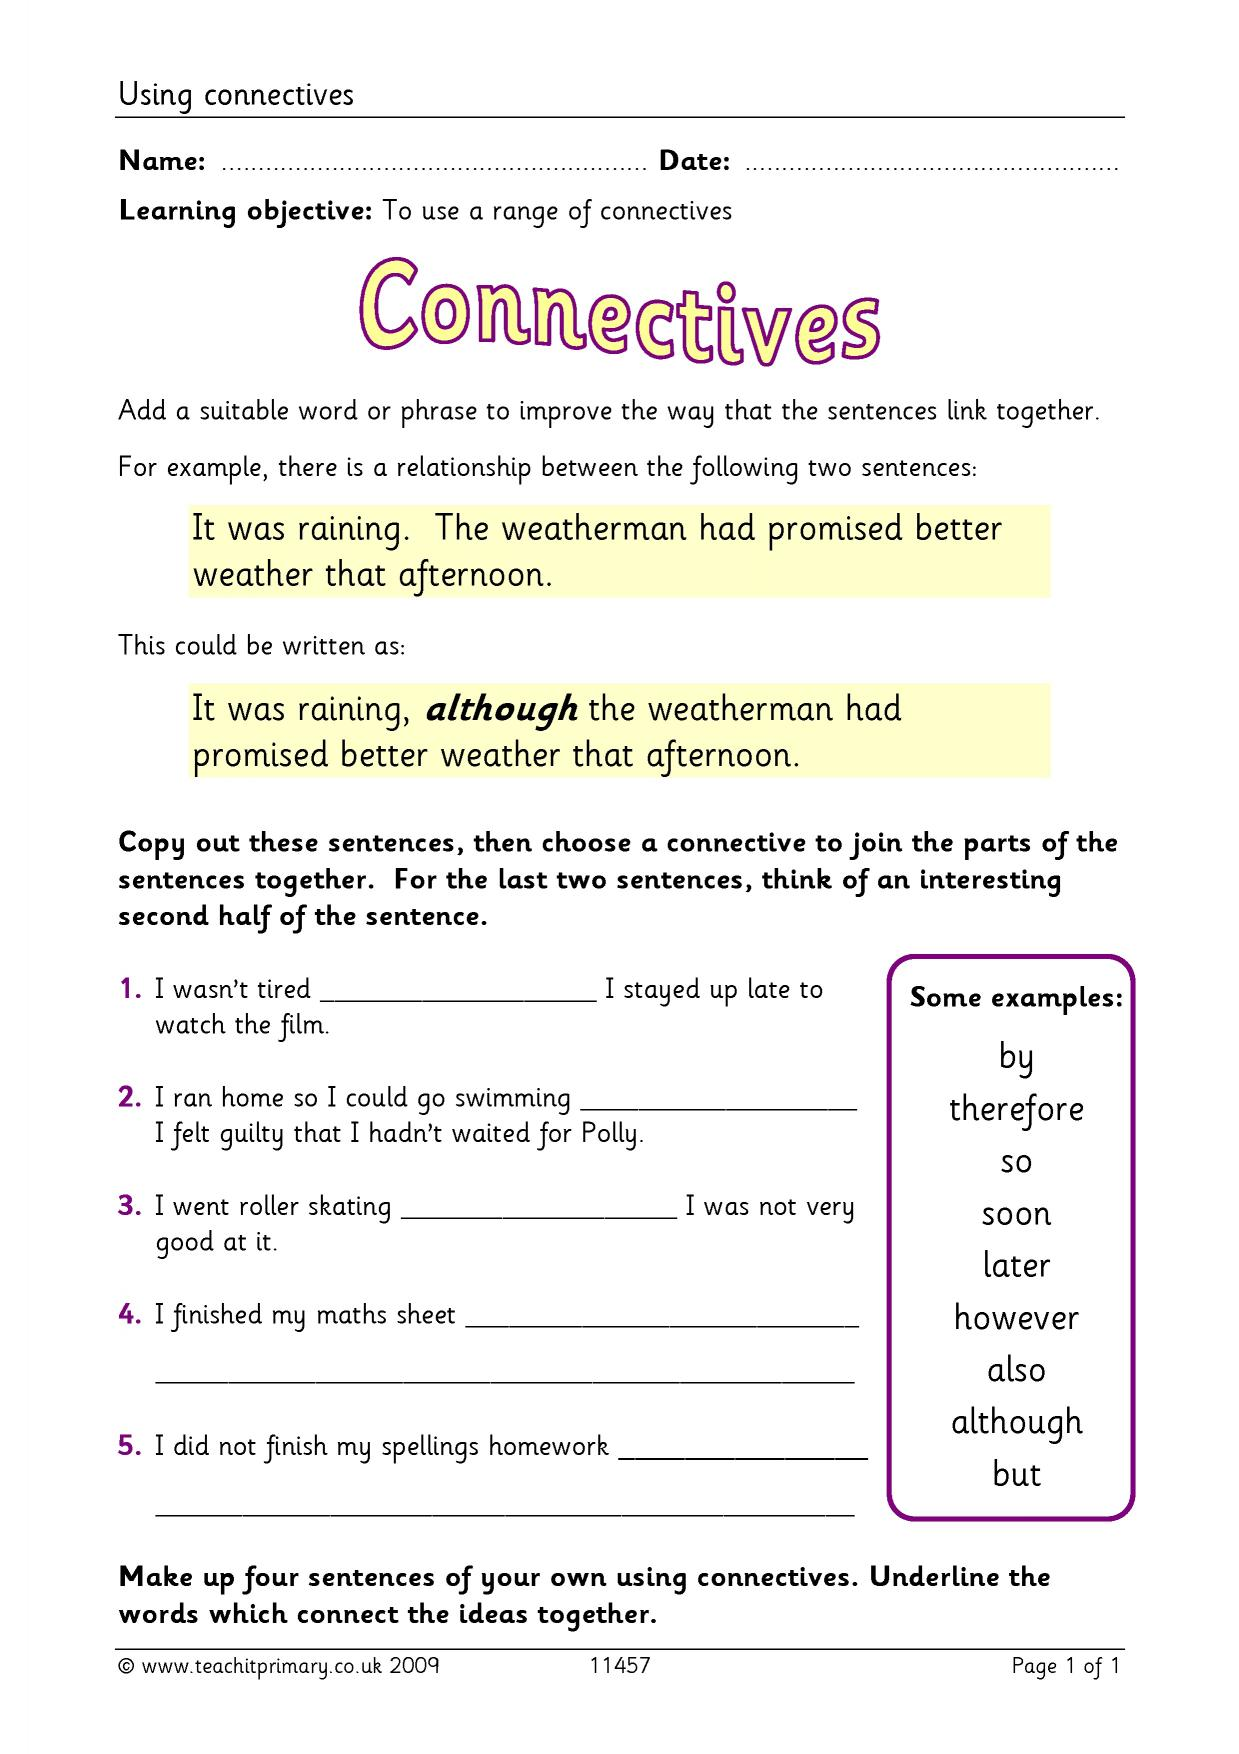 Using Connectives